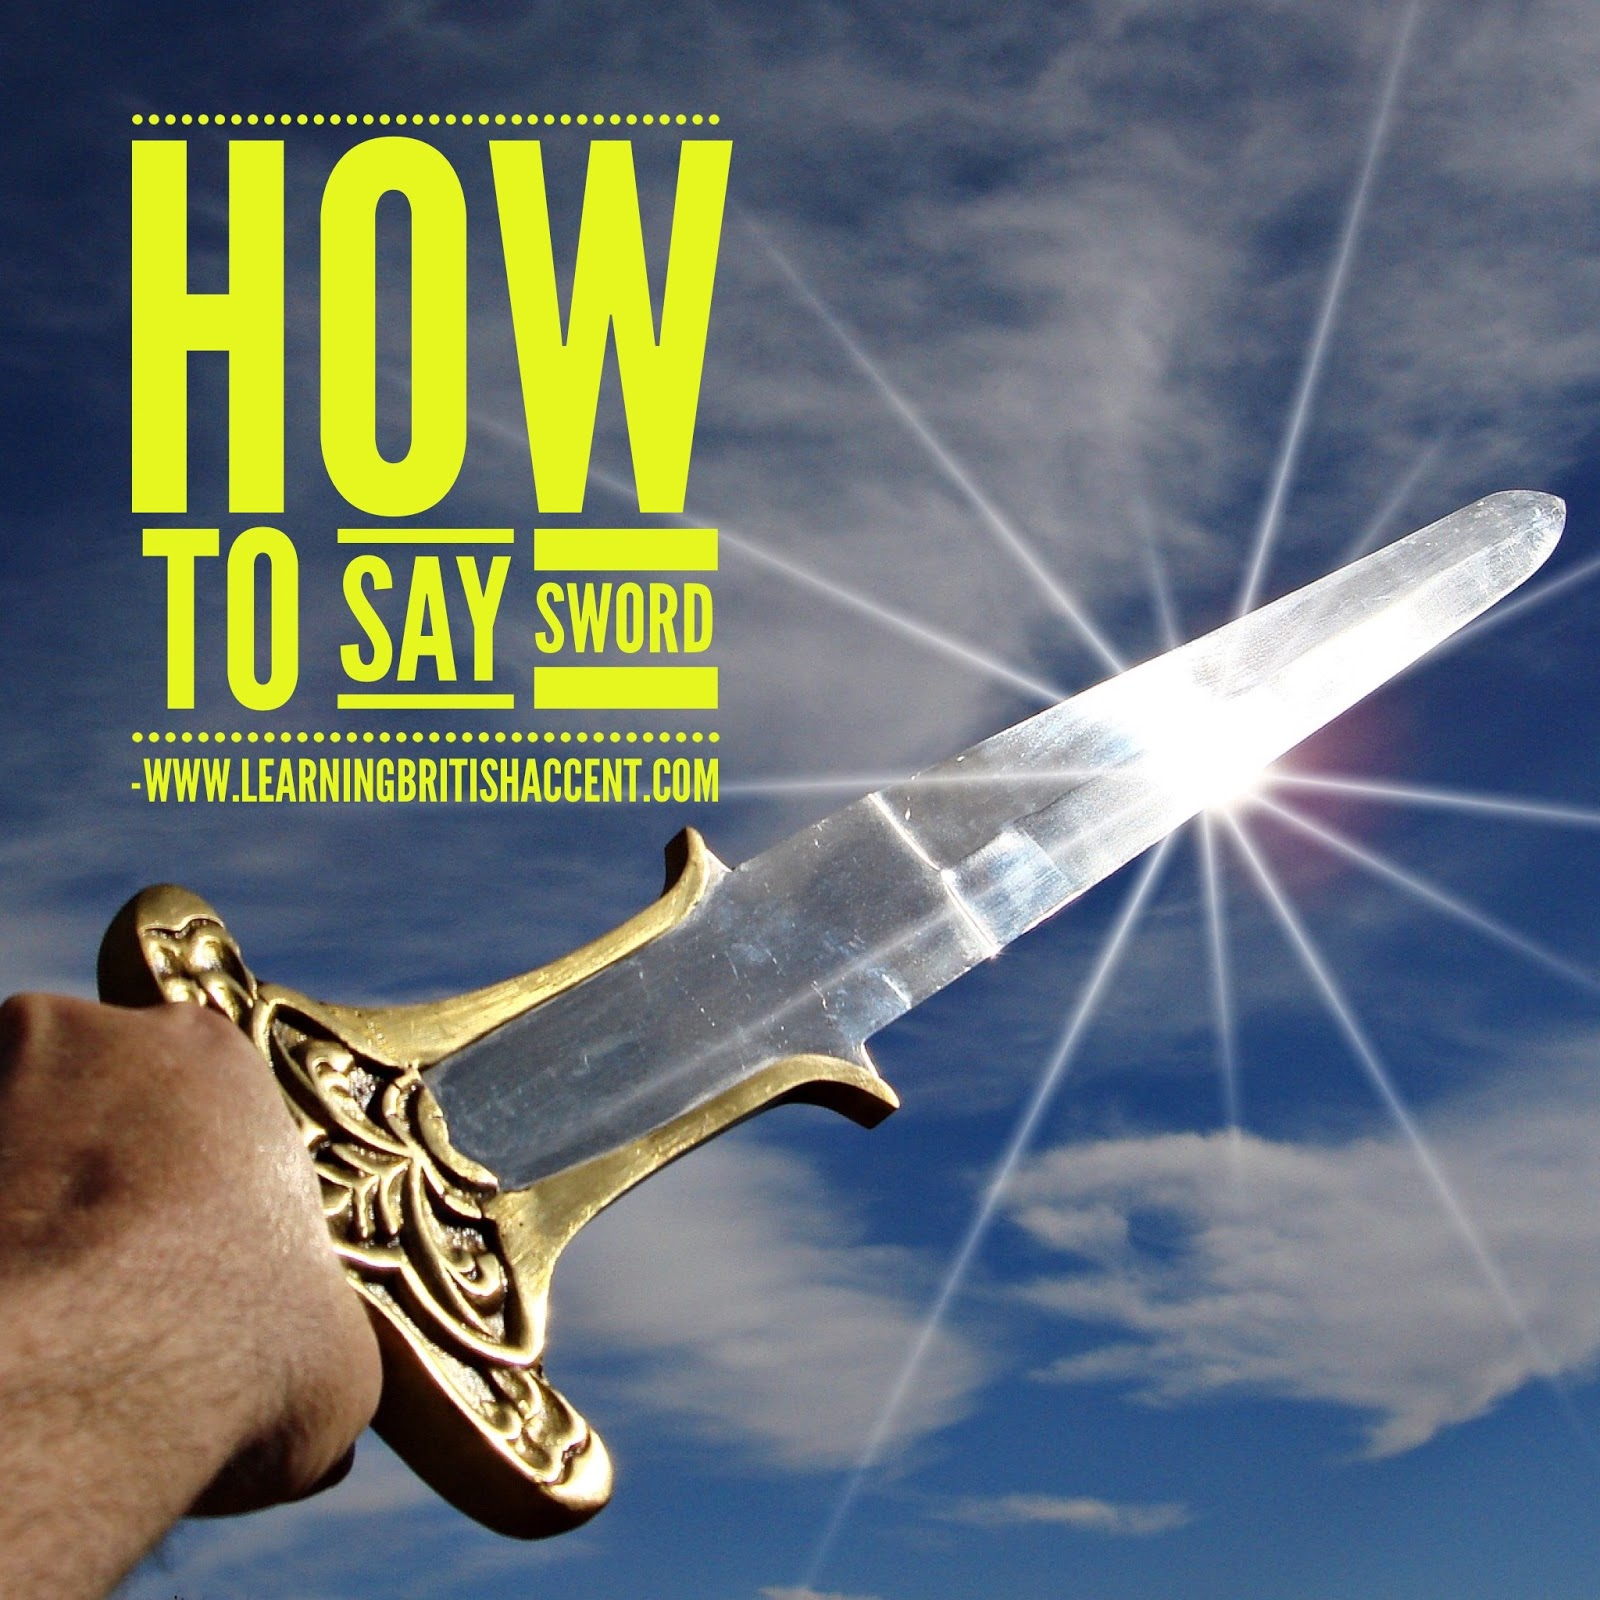 Learning British UK Accent (RP): How to pronounce Sword with